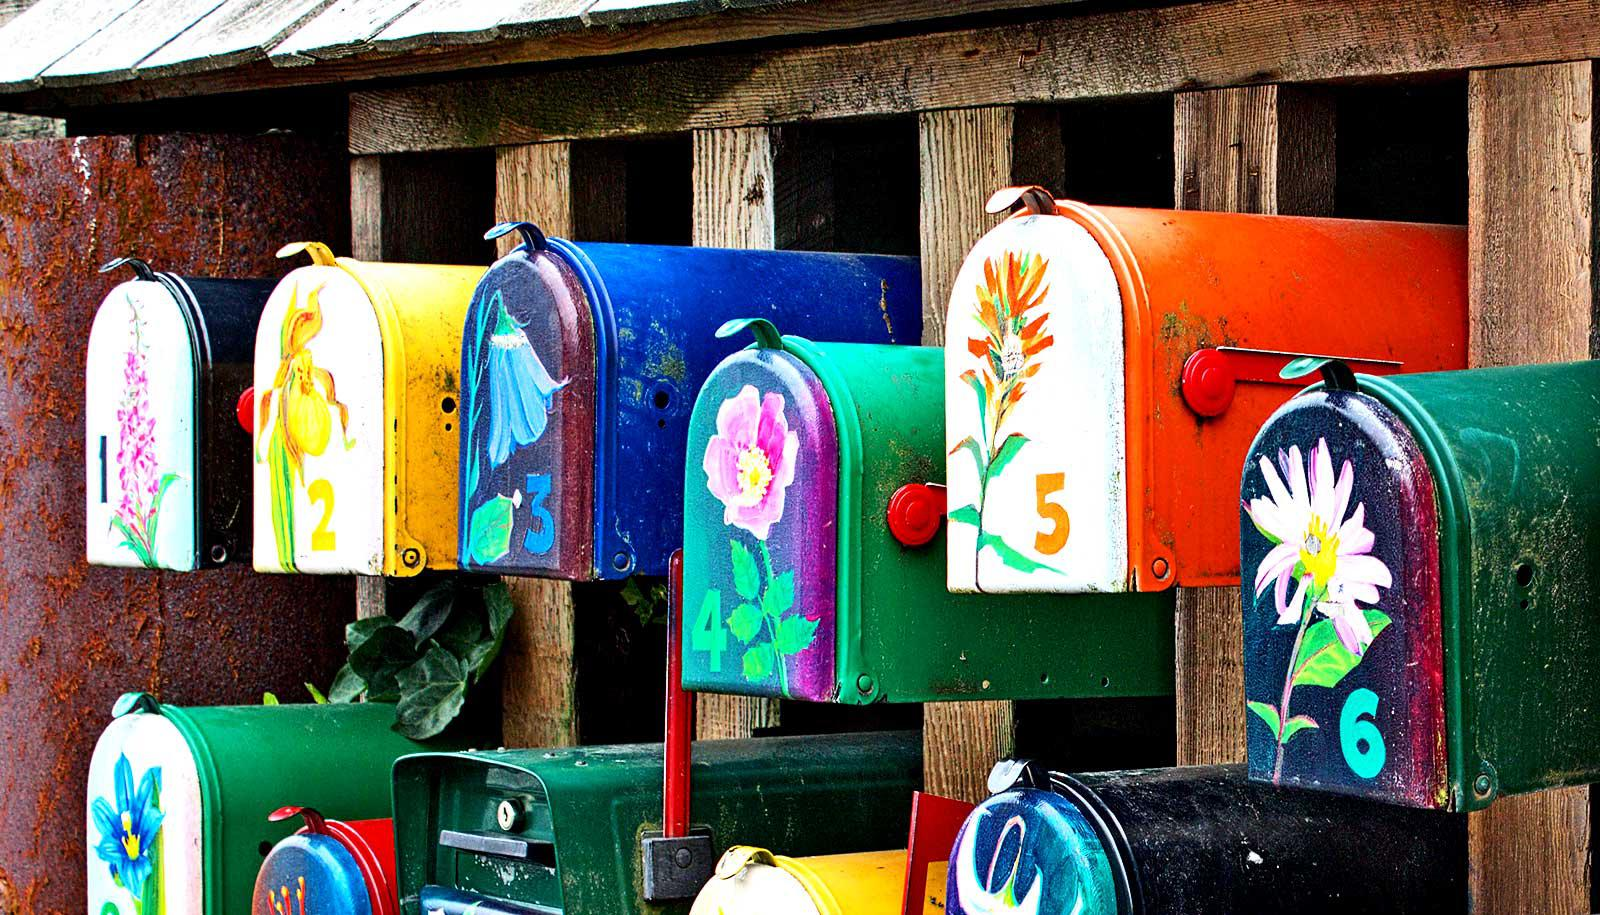 6 brightly painted mailboxes with flowers on the front sit in a row